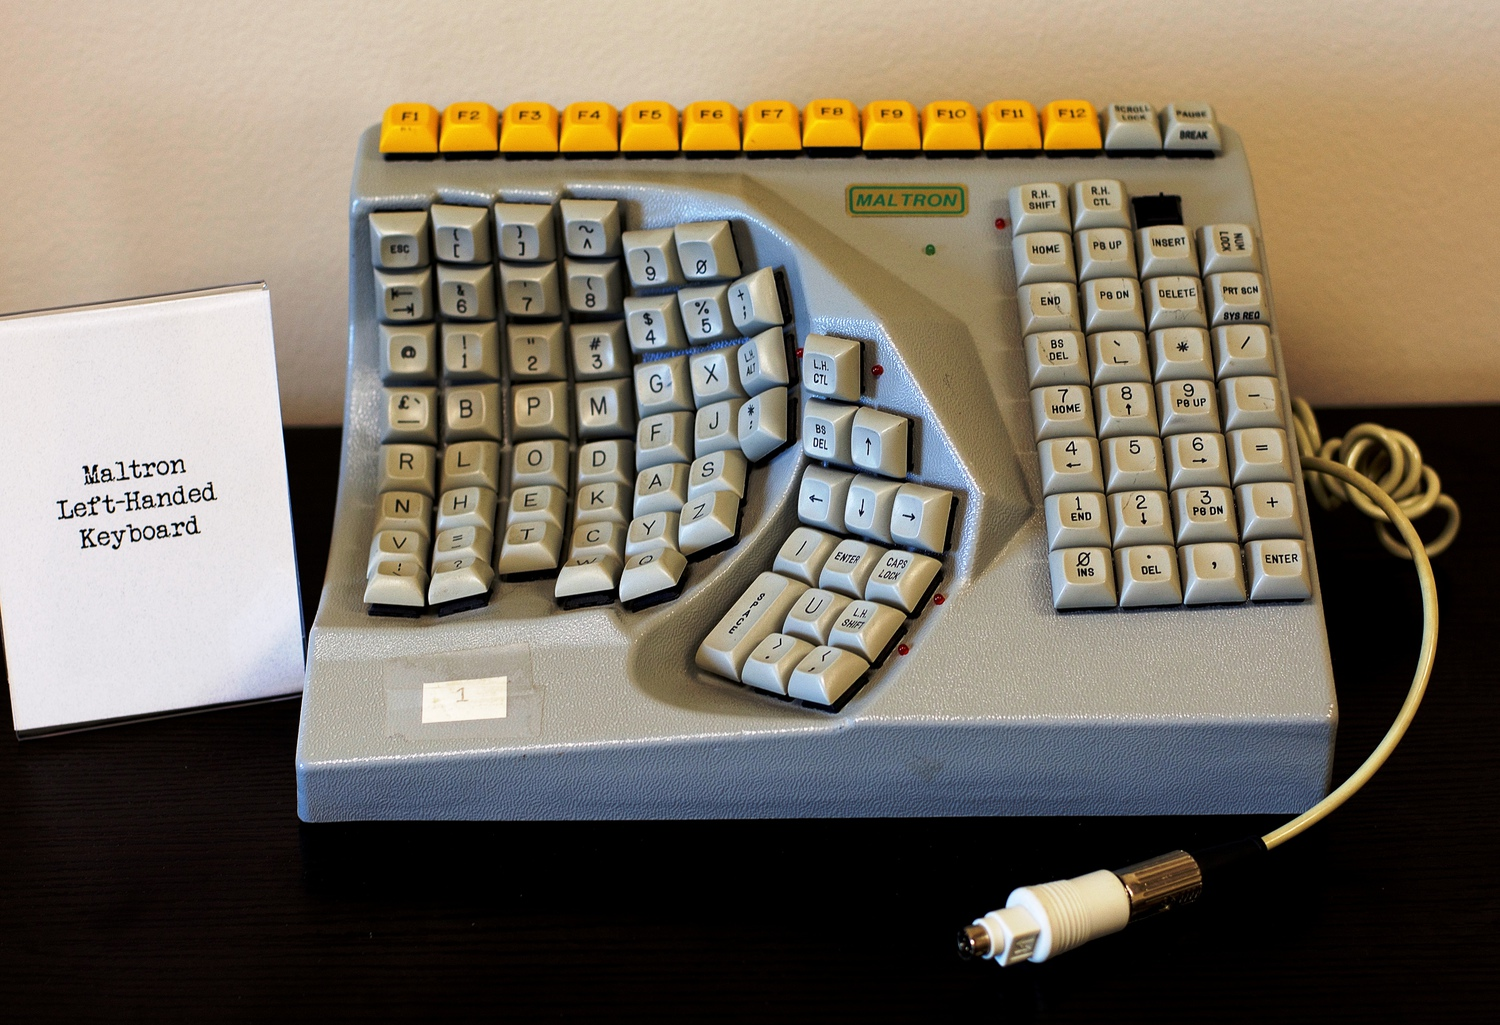 PCD Maltron Left-Handed Keyboard